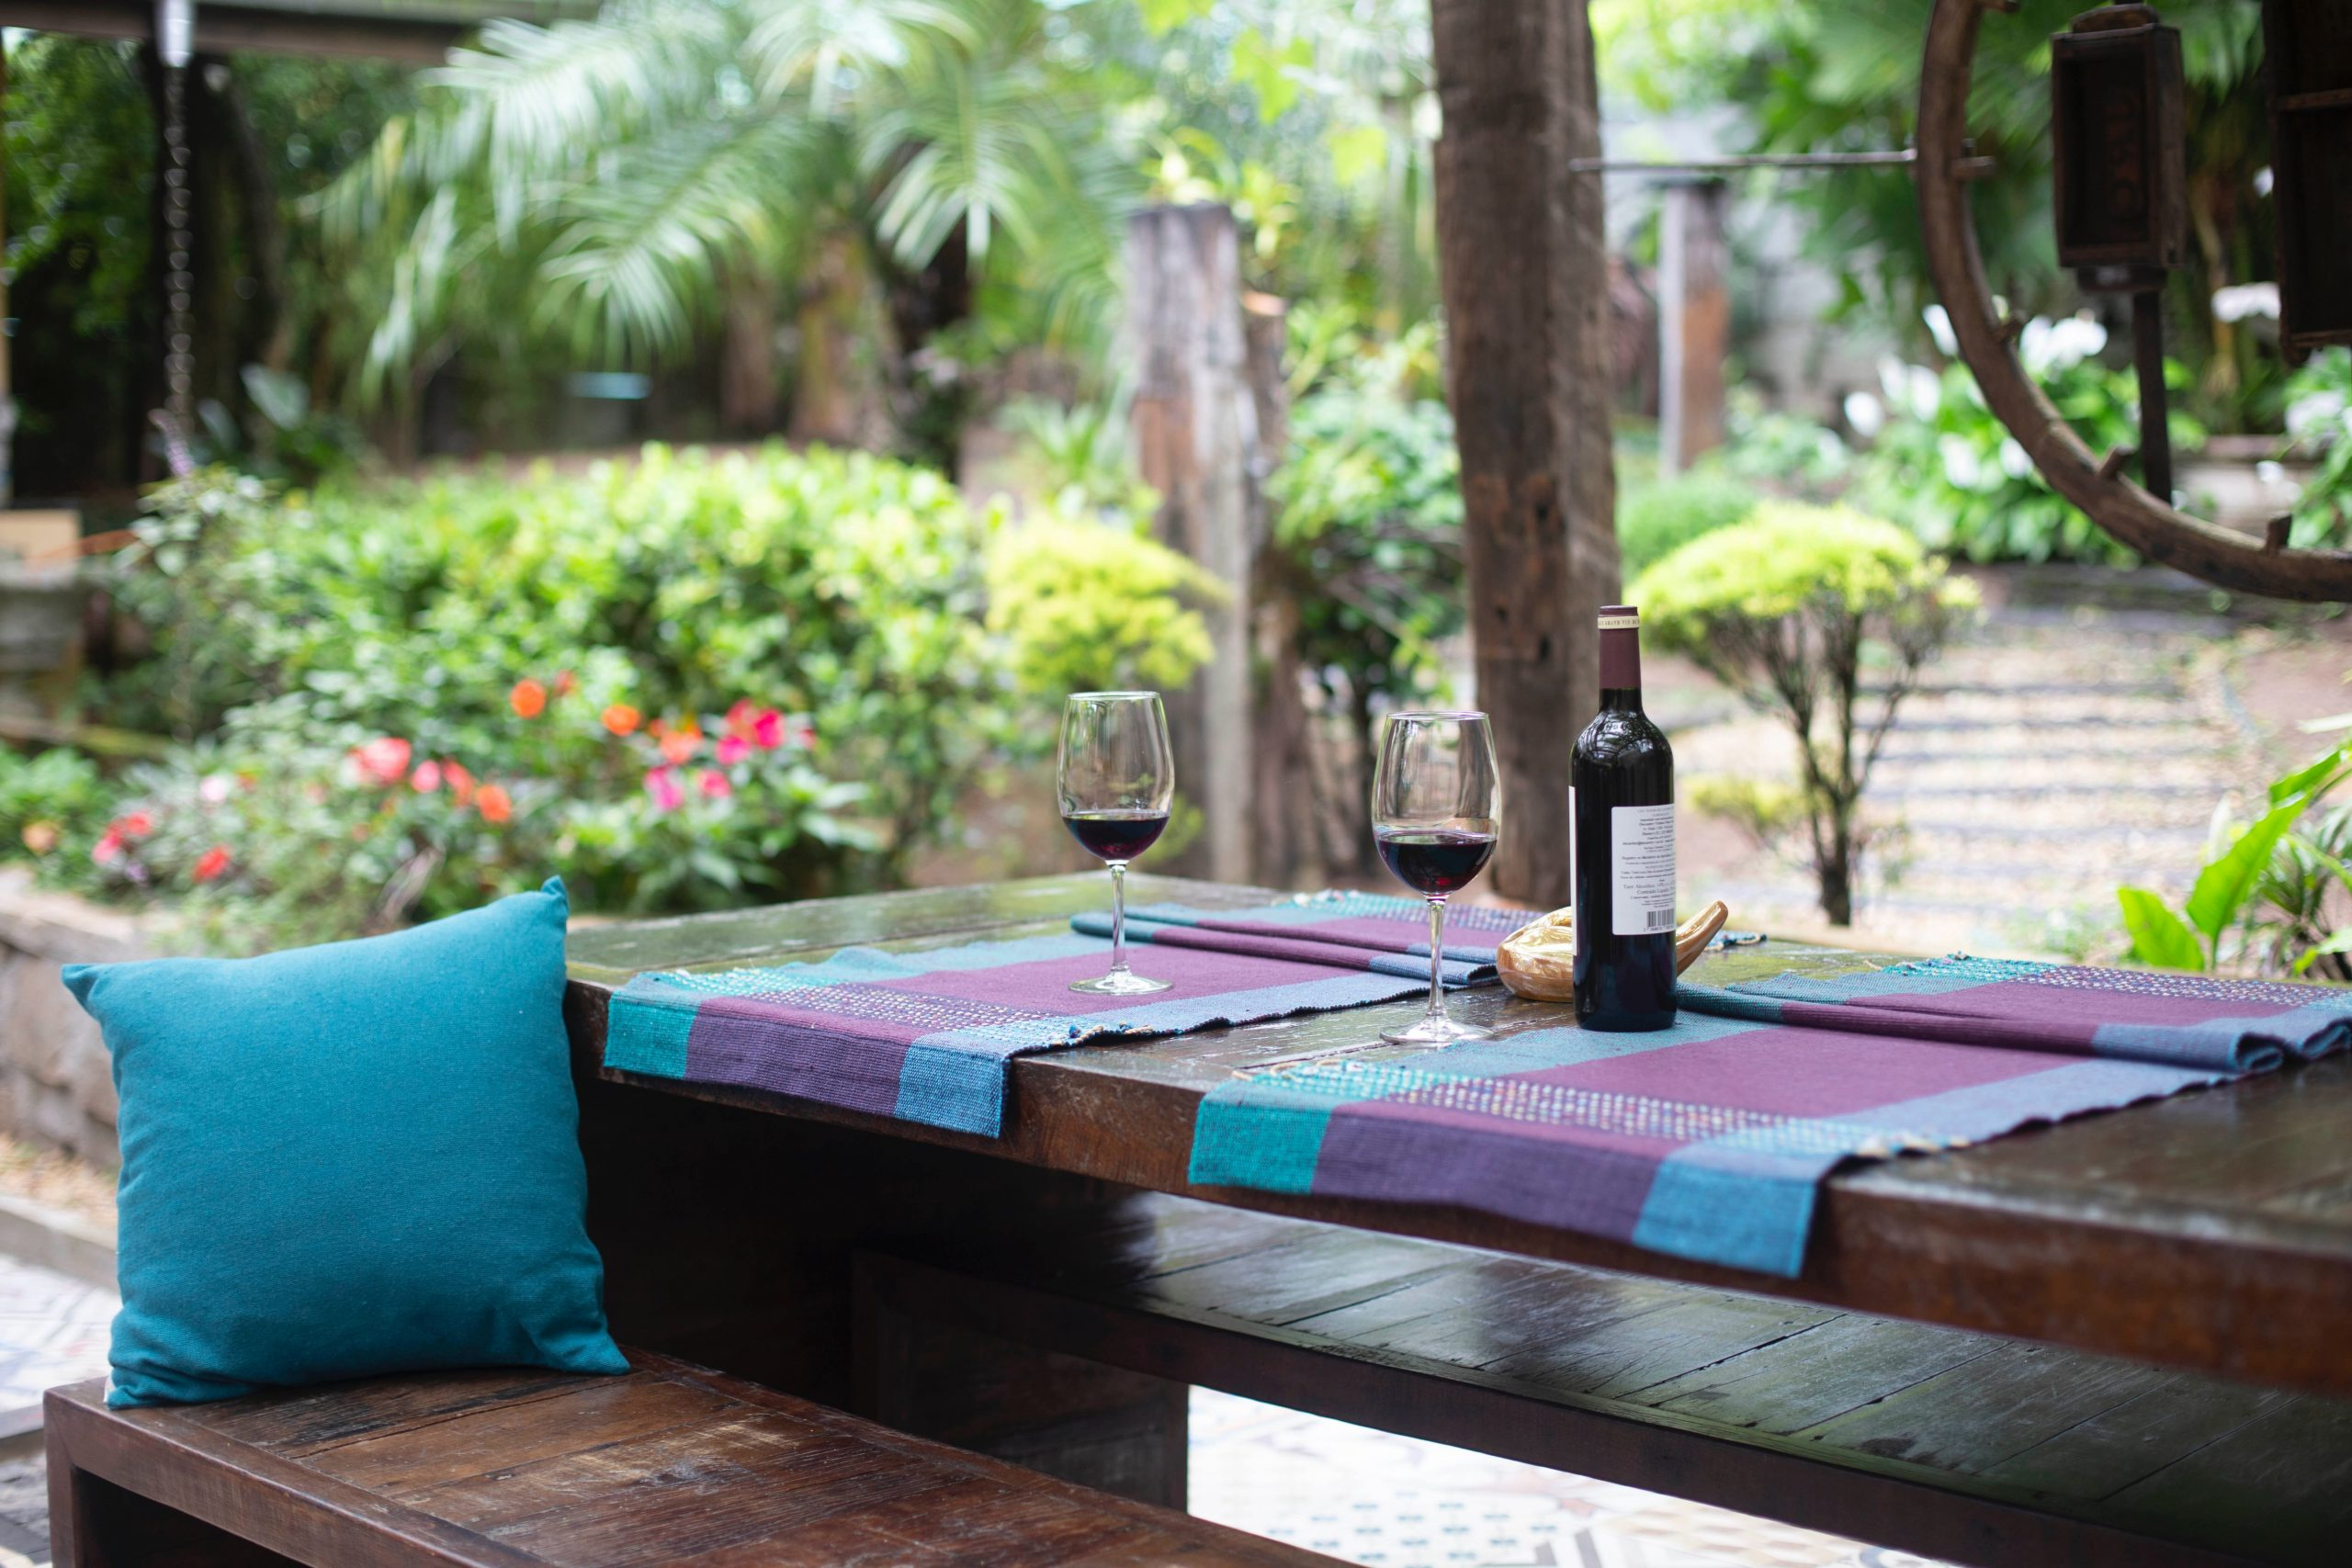 Table and benches with wine bottle and glasses in landscaped patio